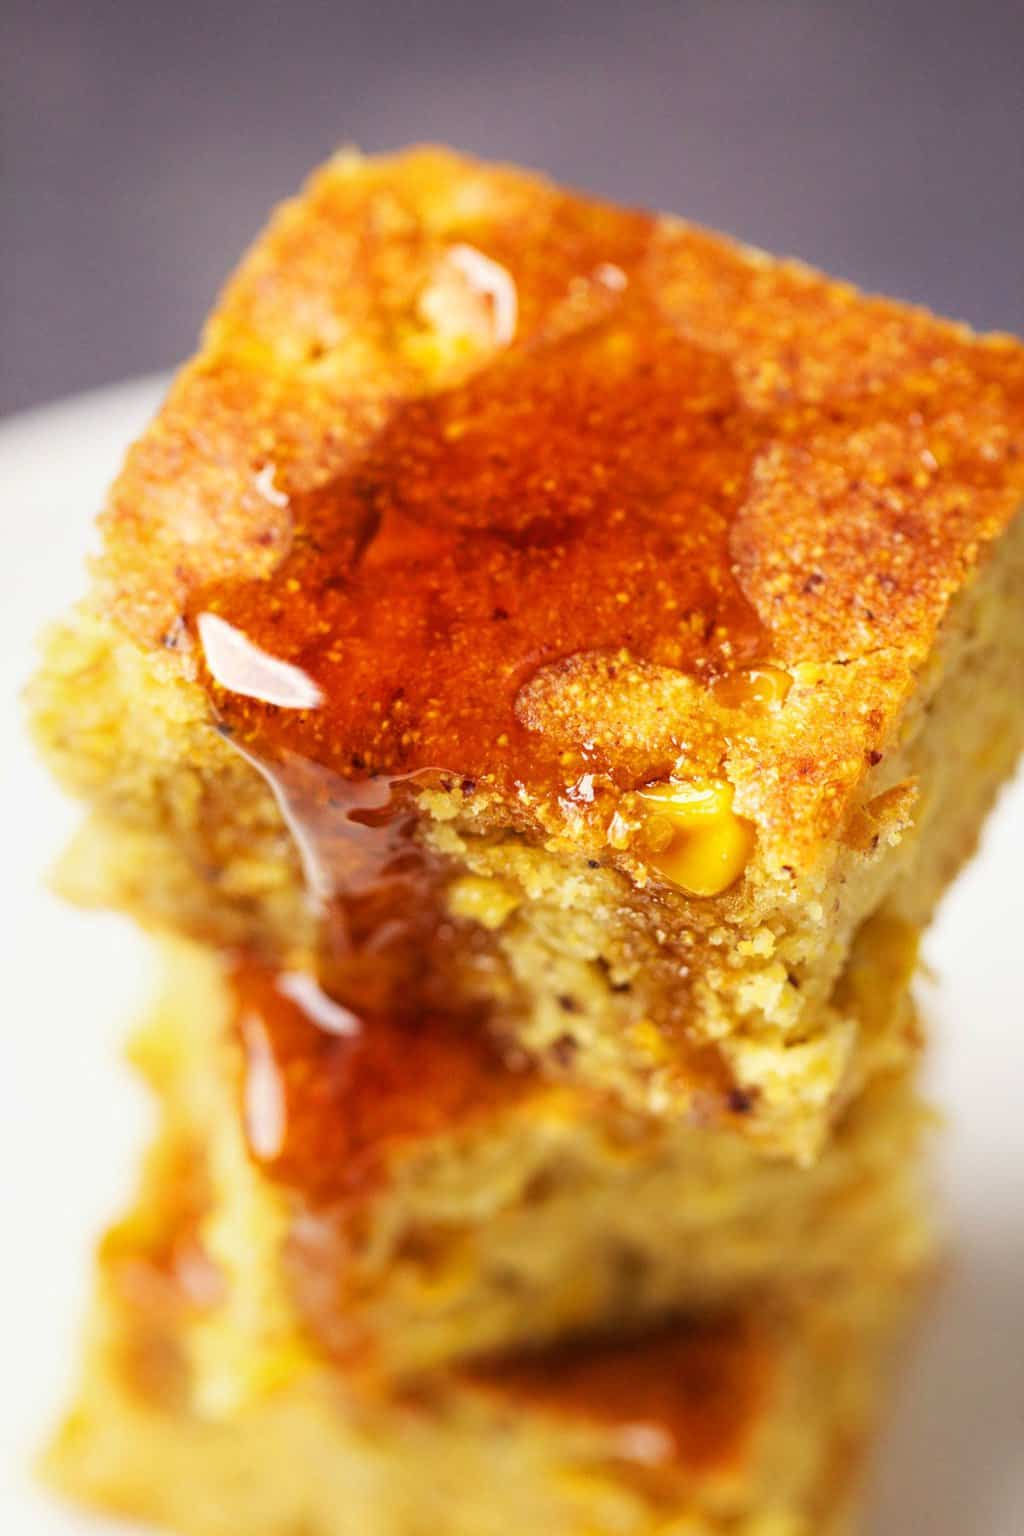 A stack of vegan cornbread with syrup on top.